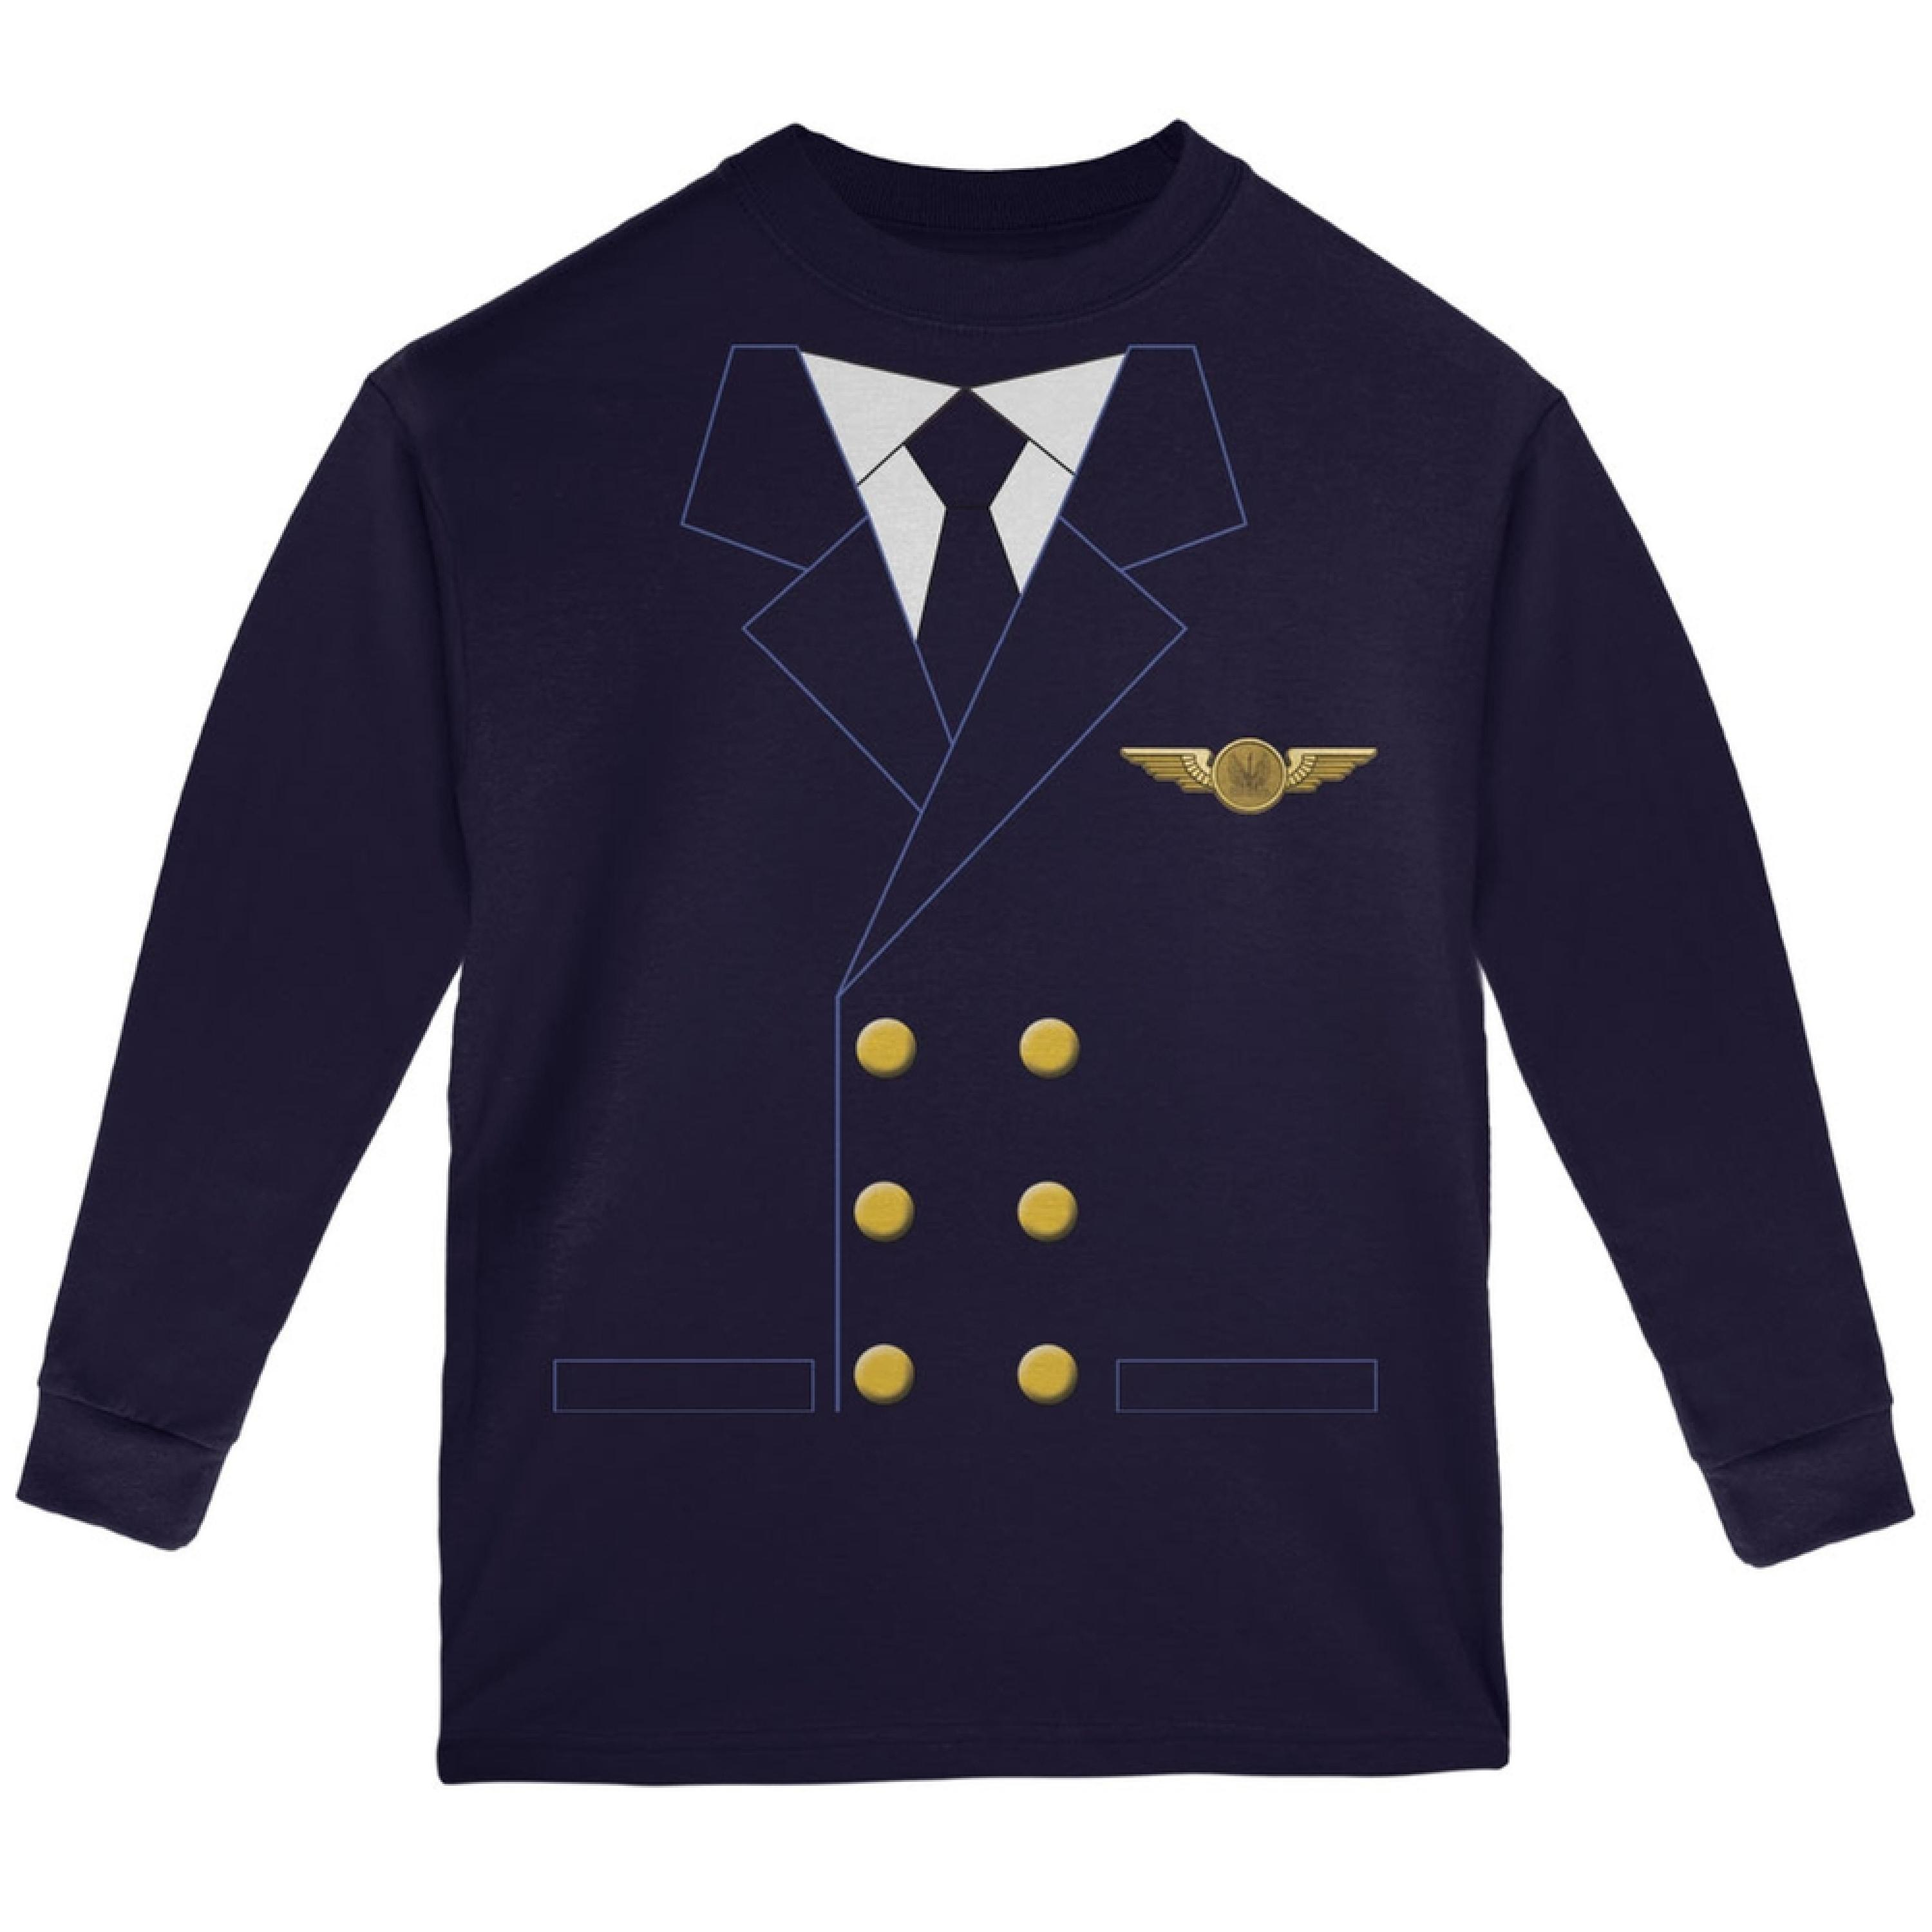 Halloween Airline Airplane Pilot Navy Youth Long Sleeve T-Shirt